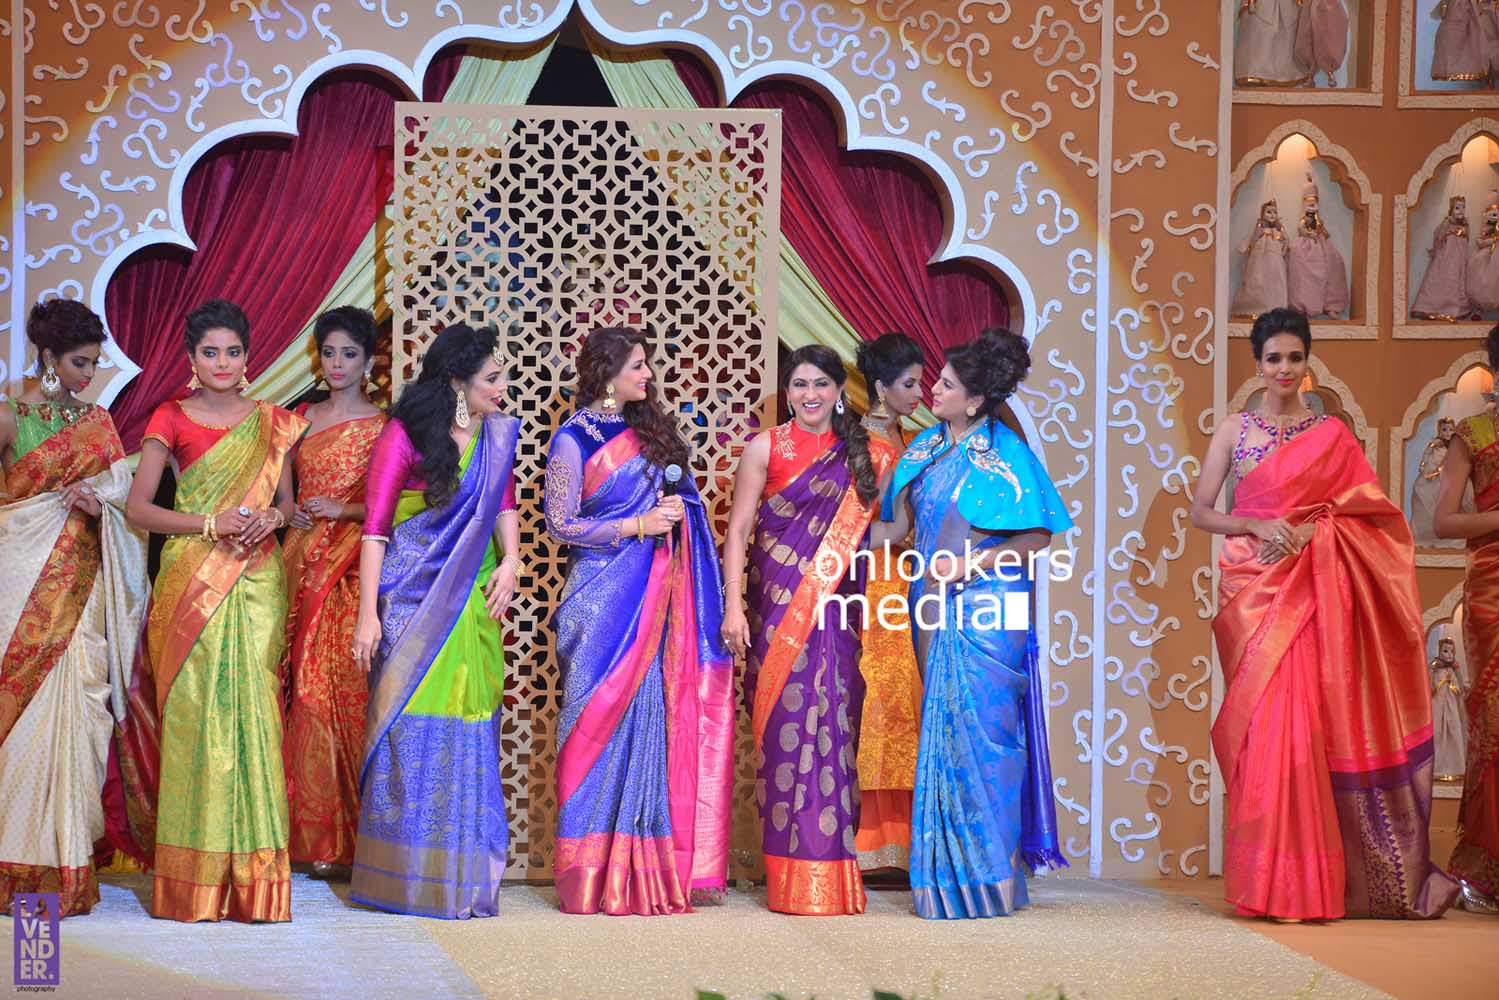 http://onlookersmedia.in/wp-content/uploads/2016/10/Beena-Kannan-Bridal-Show-2016-Stills-Photos-Seematti-240.jpg